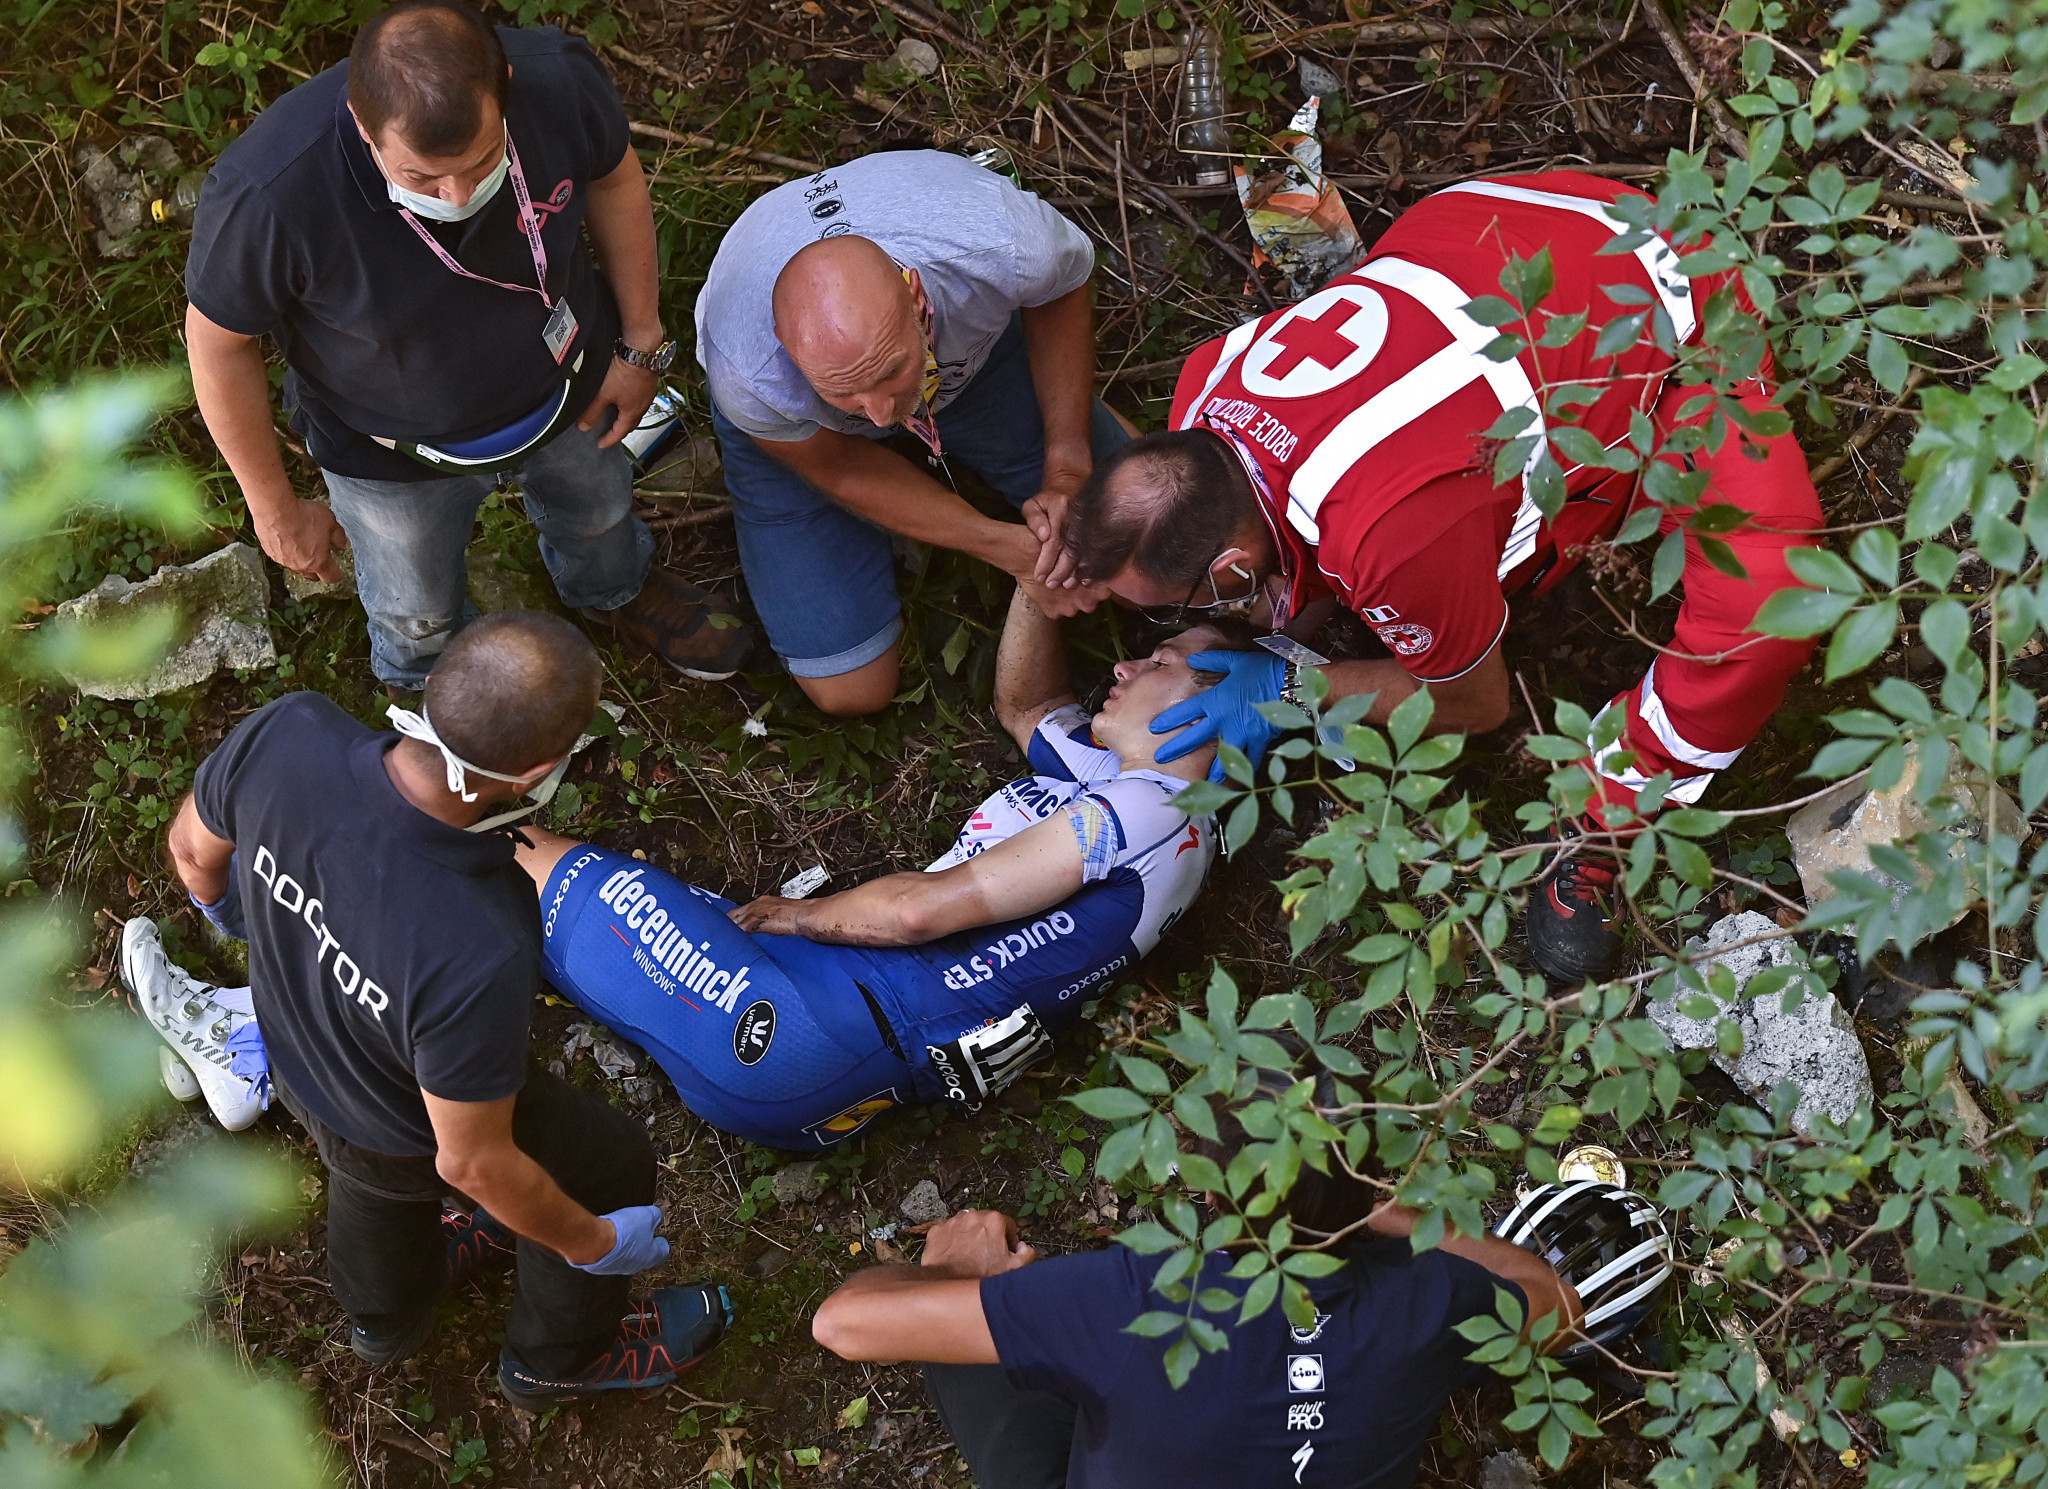 An item was removed from Remco Evenepoel's pocket after his crash earlier this month ©Getty Images